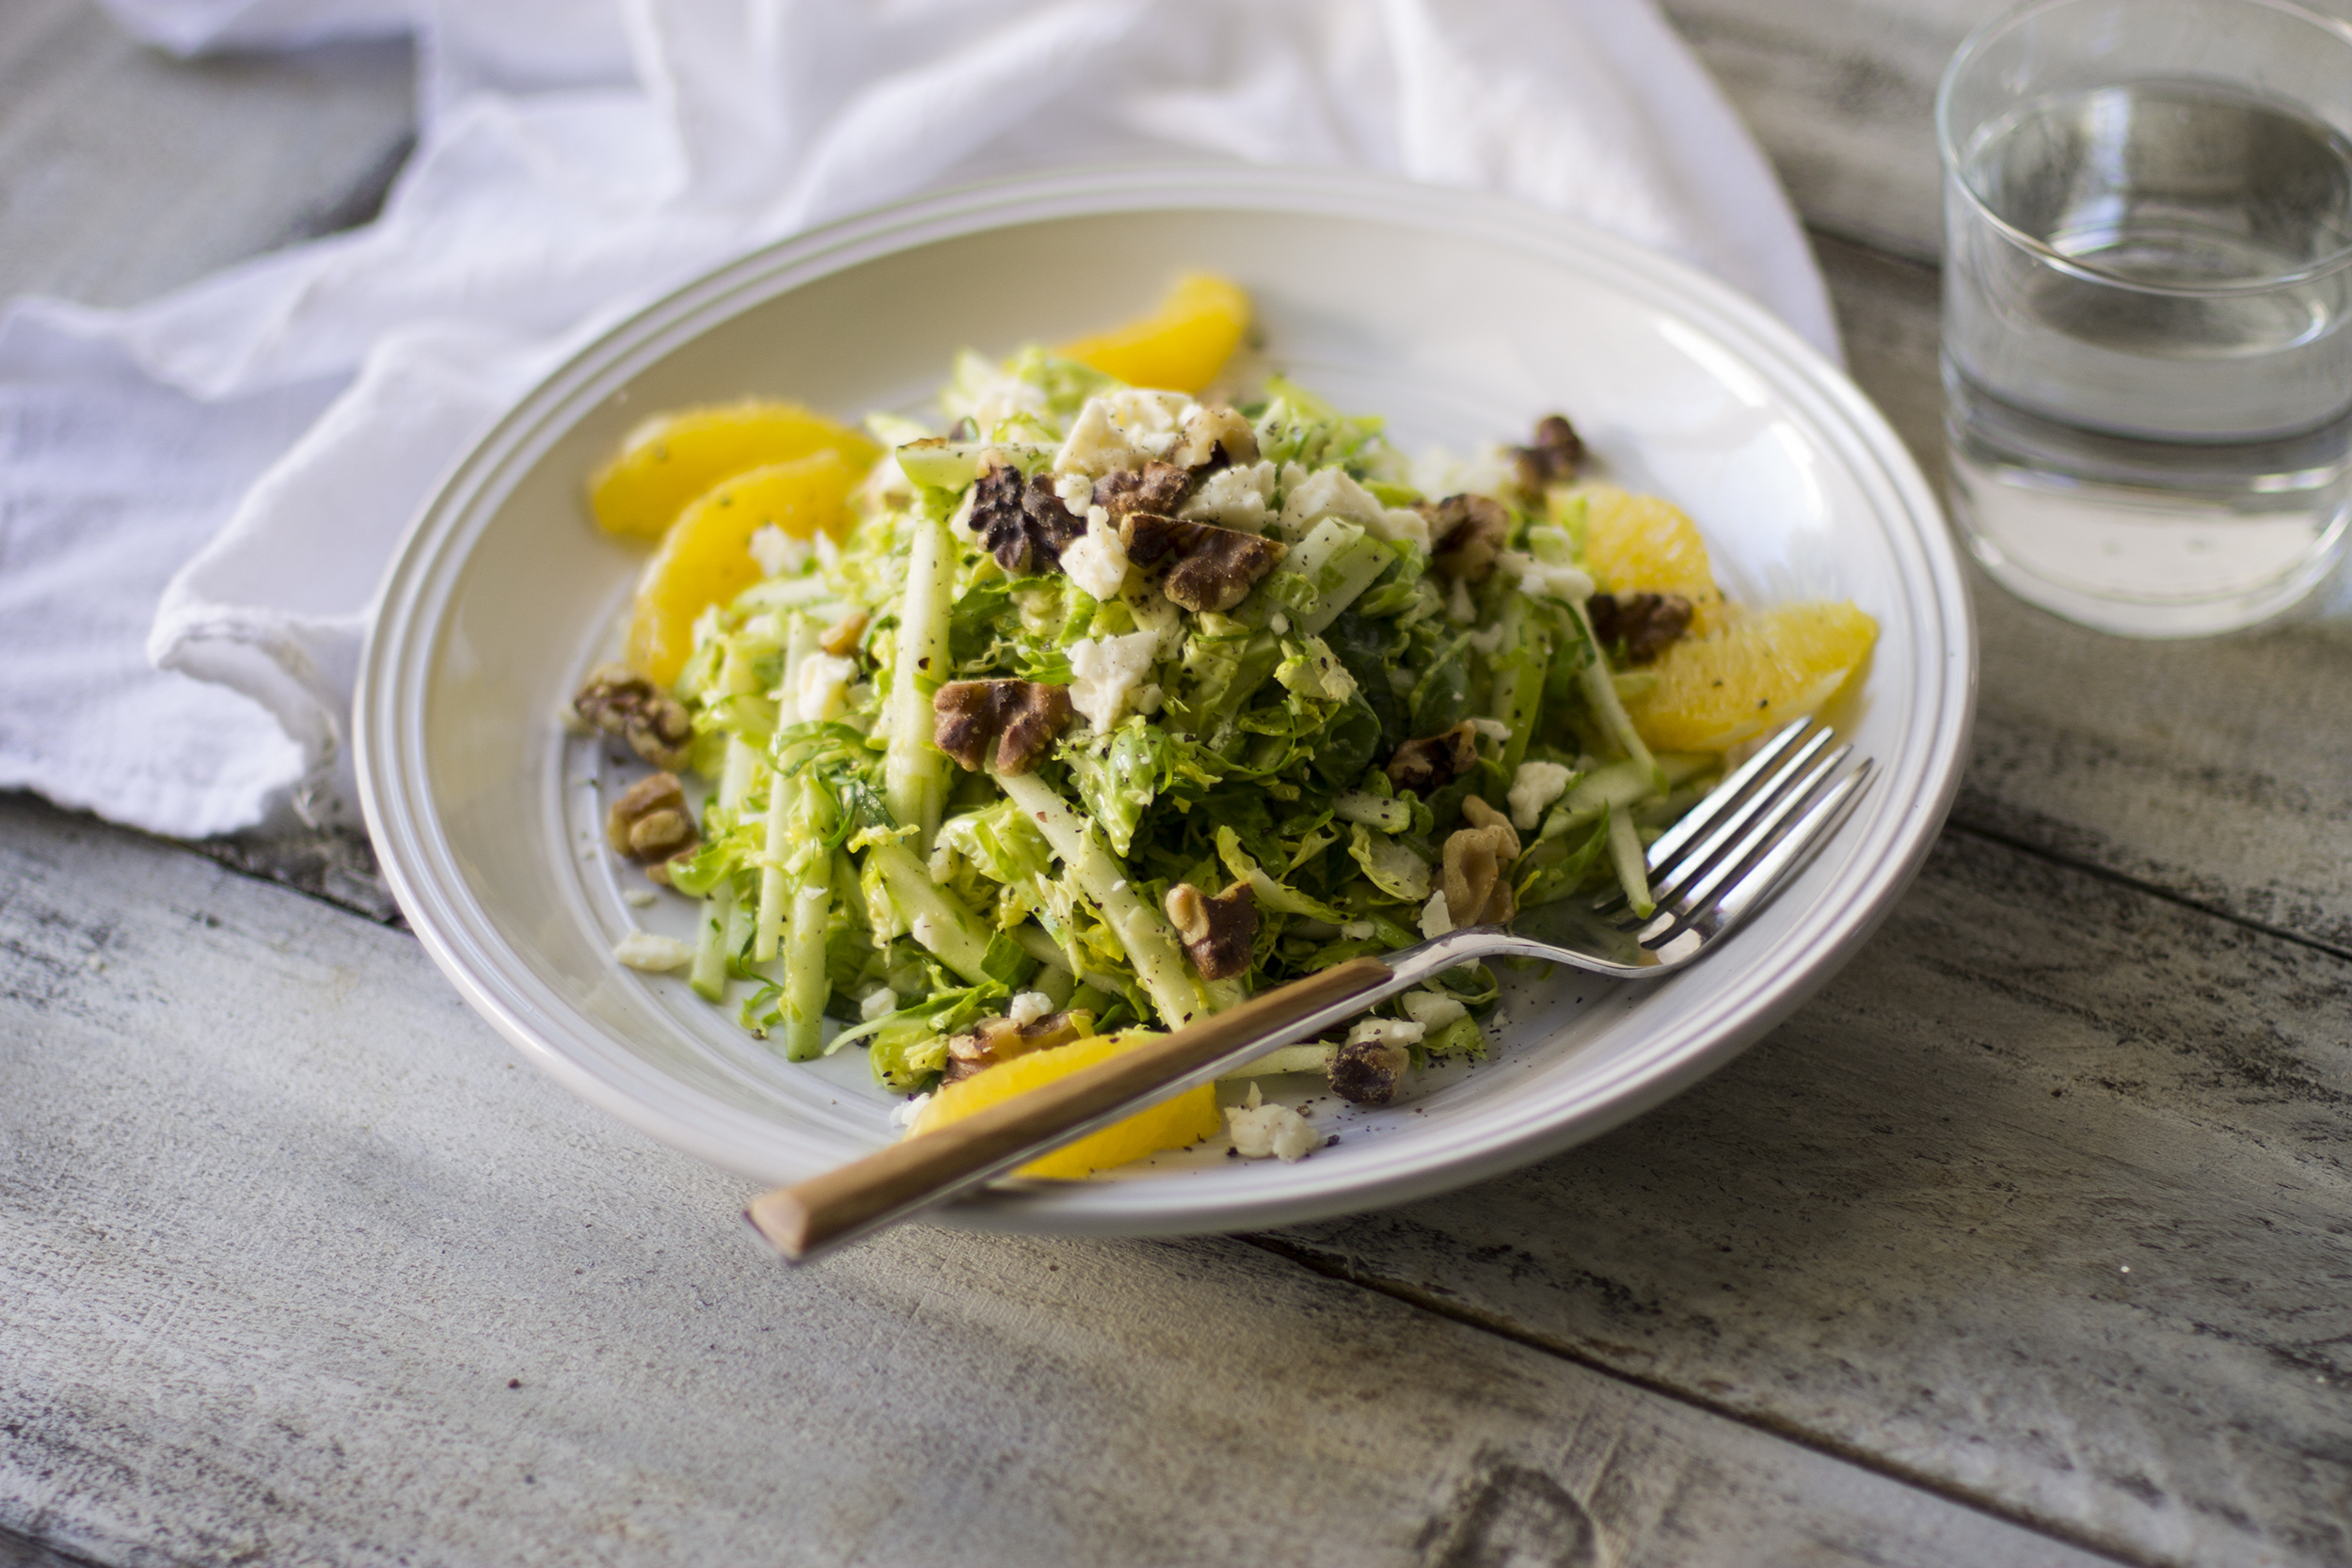 Citrus Shaved Brussel Sprout Salad with White Cheddar: My Diary of Us